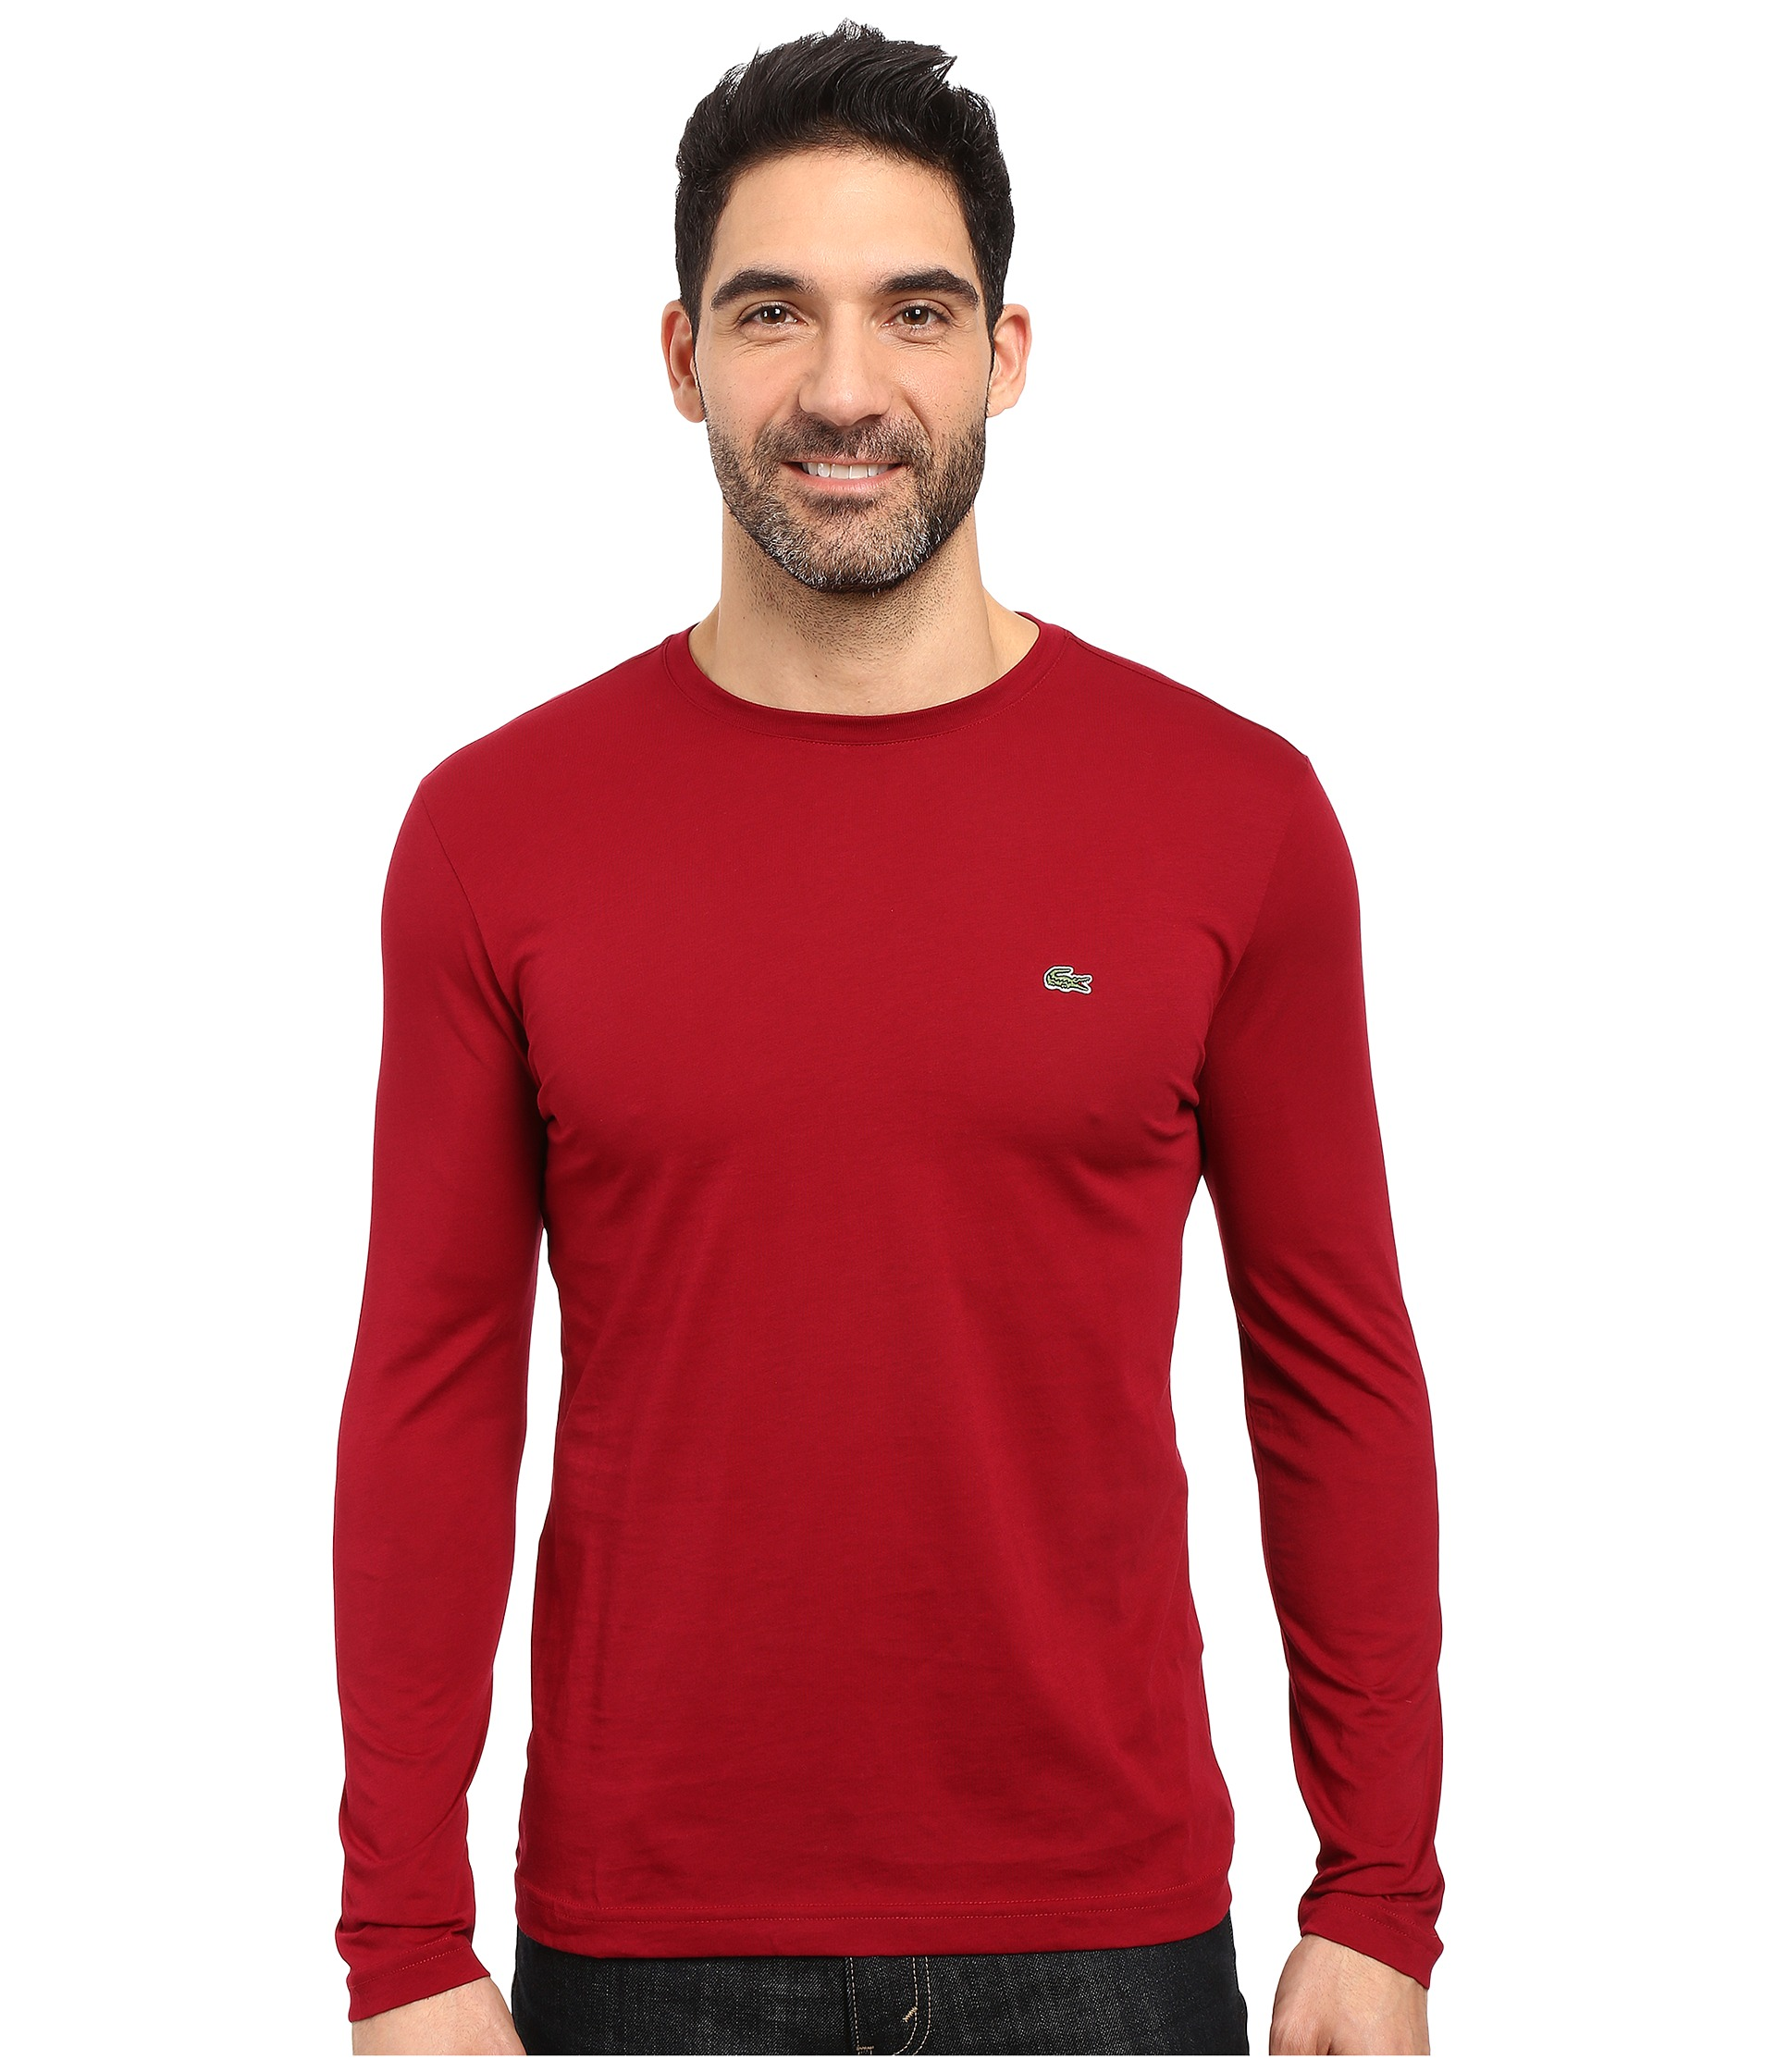 Lacoste Long Sleeve Pima Jersey Crew Neck Tee Shirt At